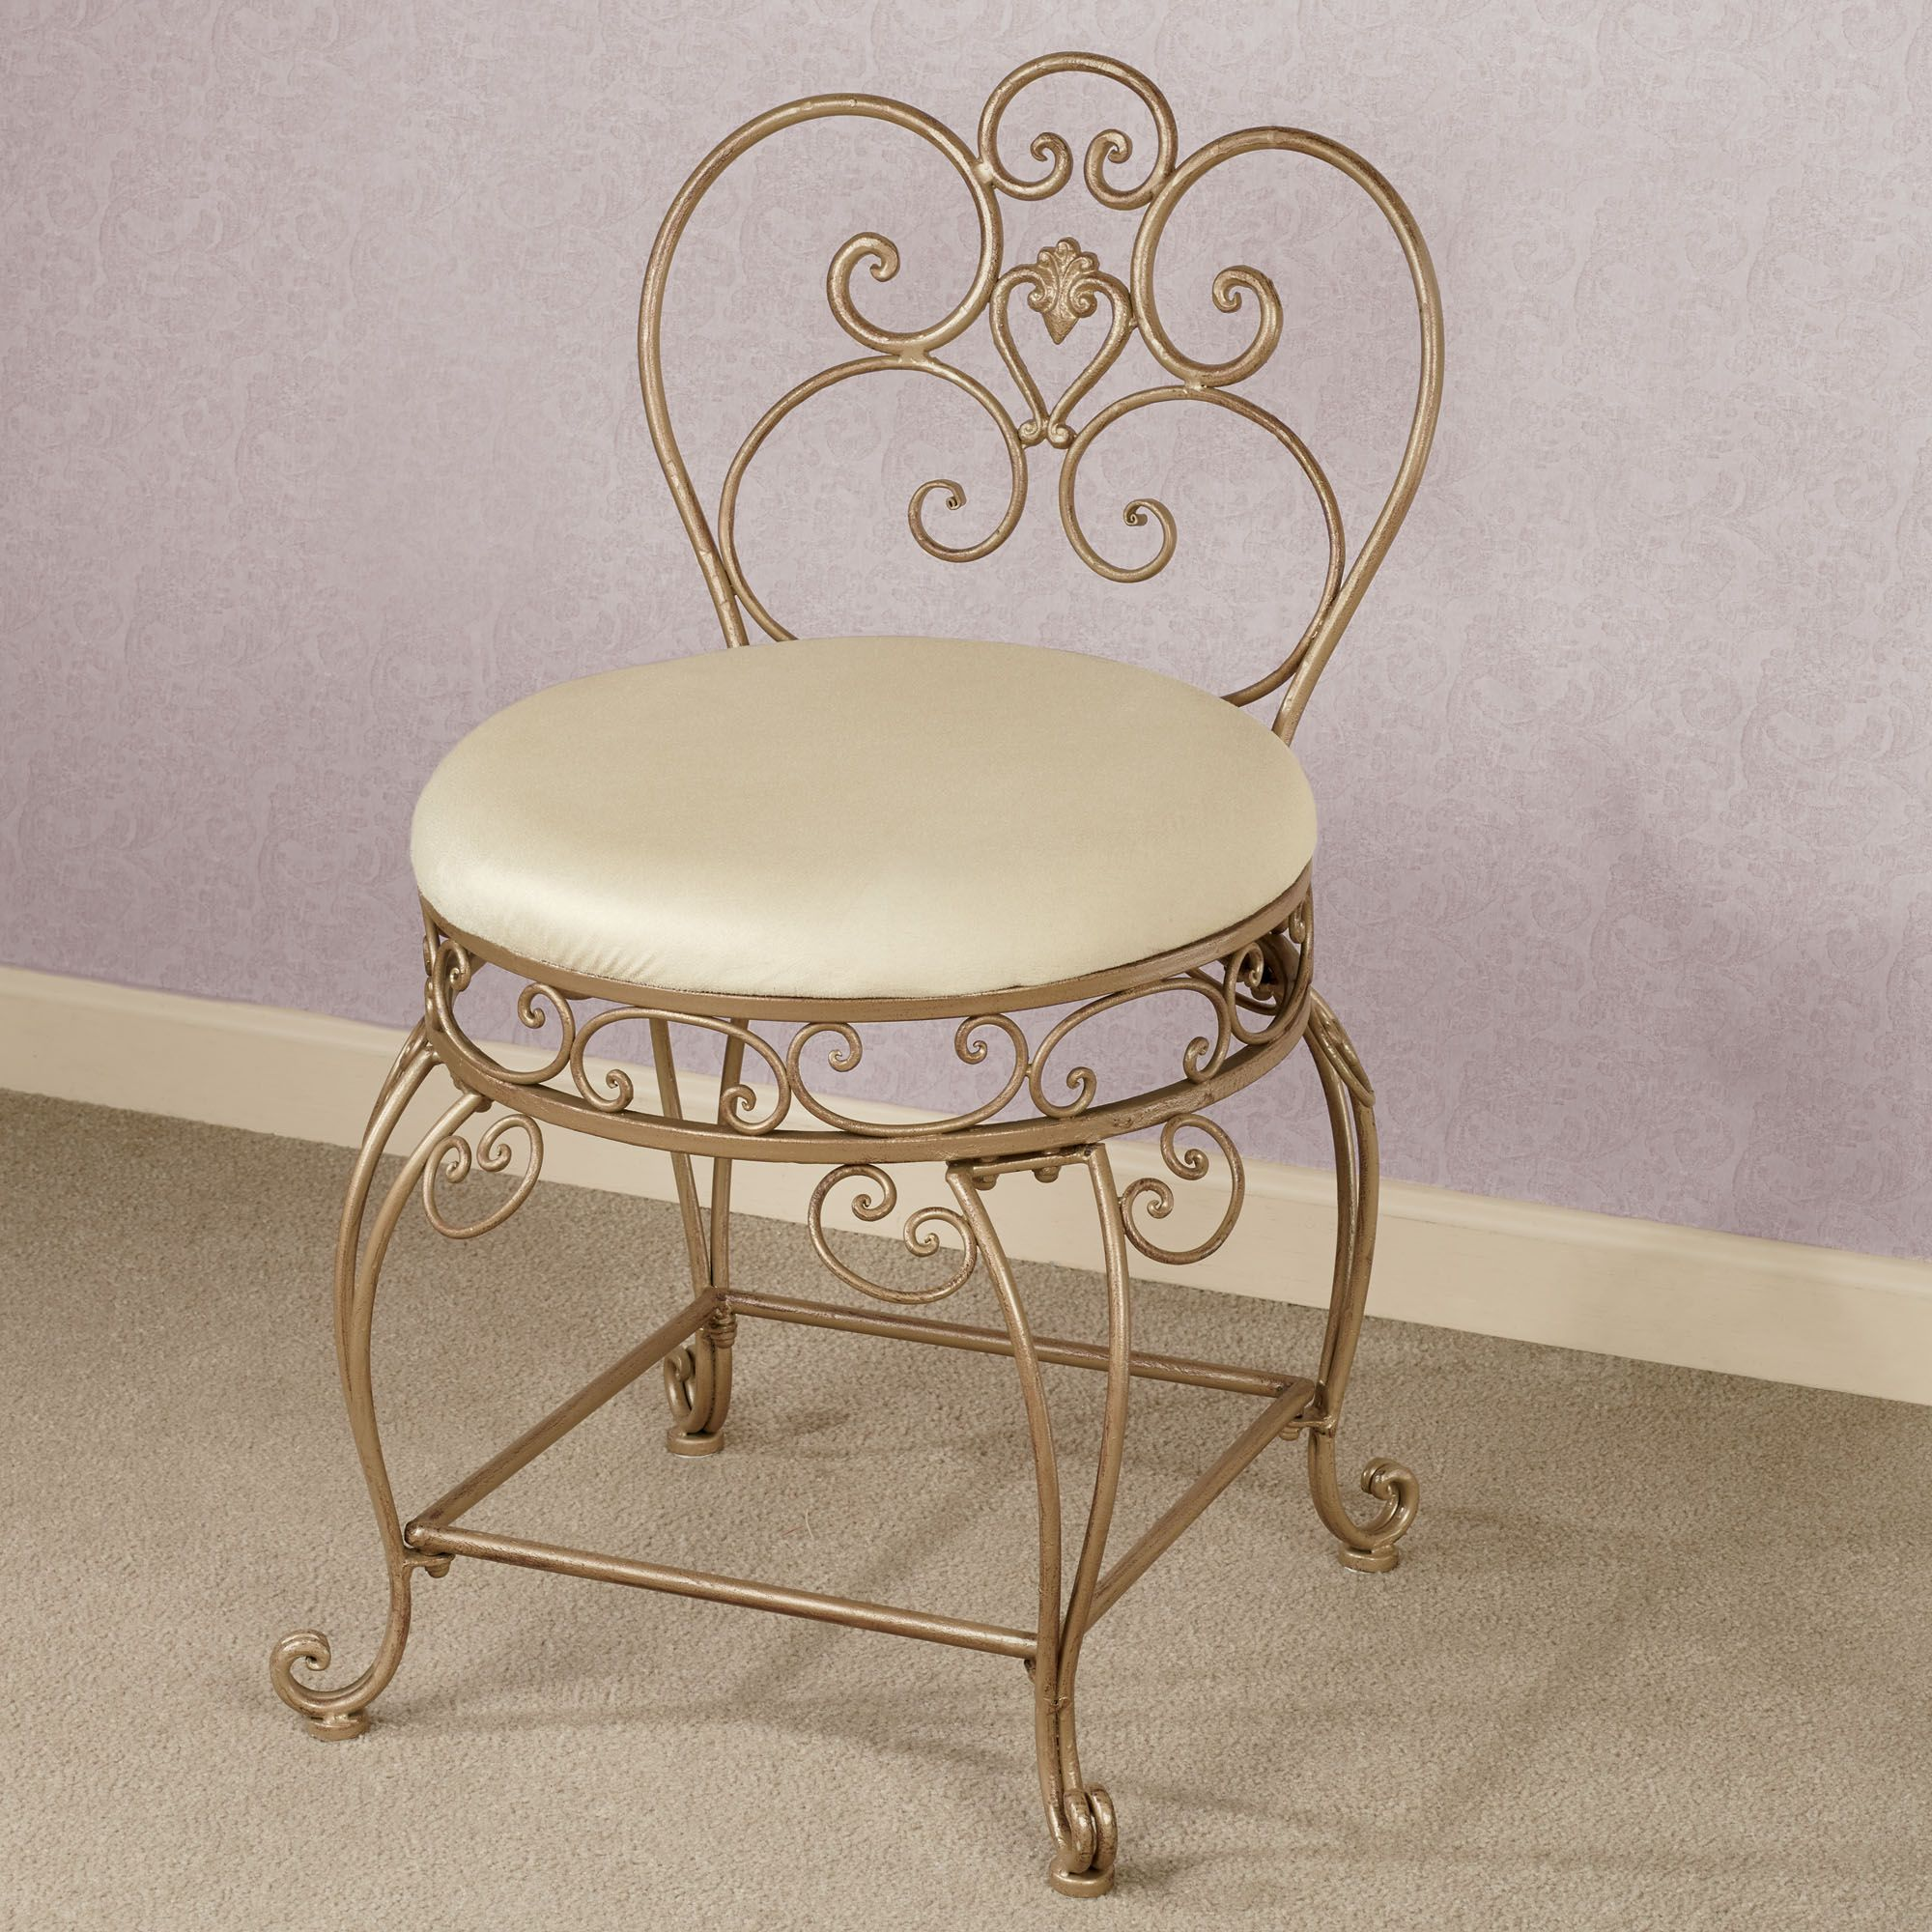 Aldabella Satin Gold Upholstered Vanity Chair